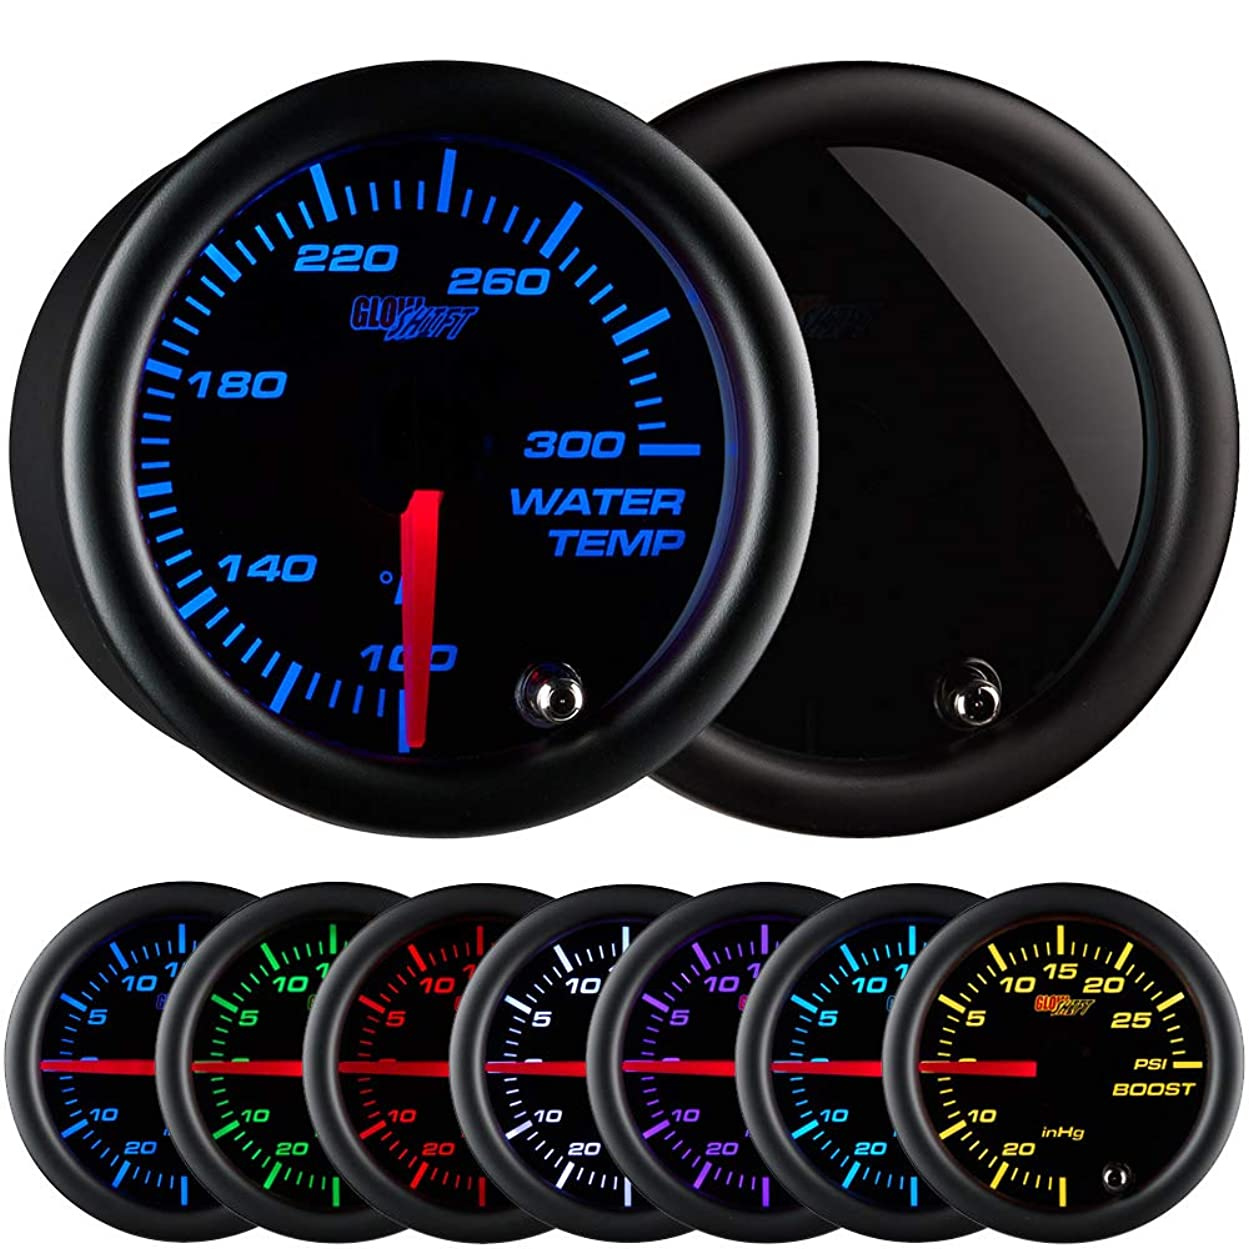 GlowShift Tinted 7 Color 300 F Water Coolant Temperature Gauge Kit - Includes Electronic Sensor - Black Dial - Smoked Lens - For Car & Truck - 2-1/16 dl28075789982